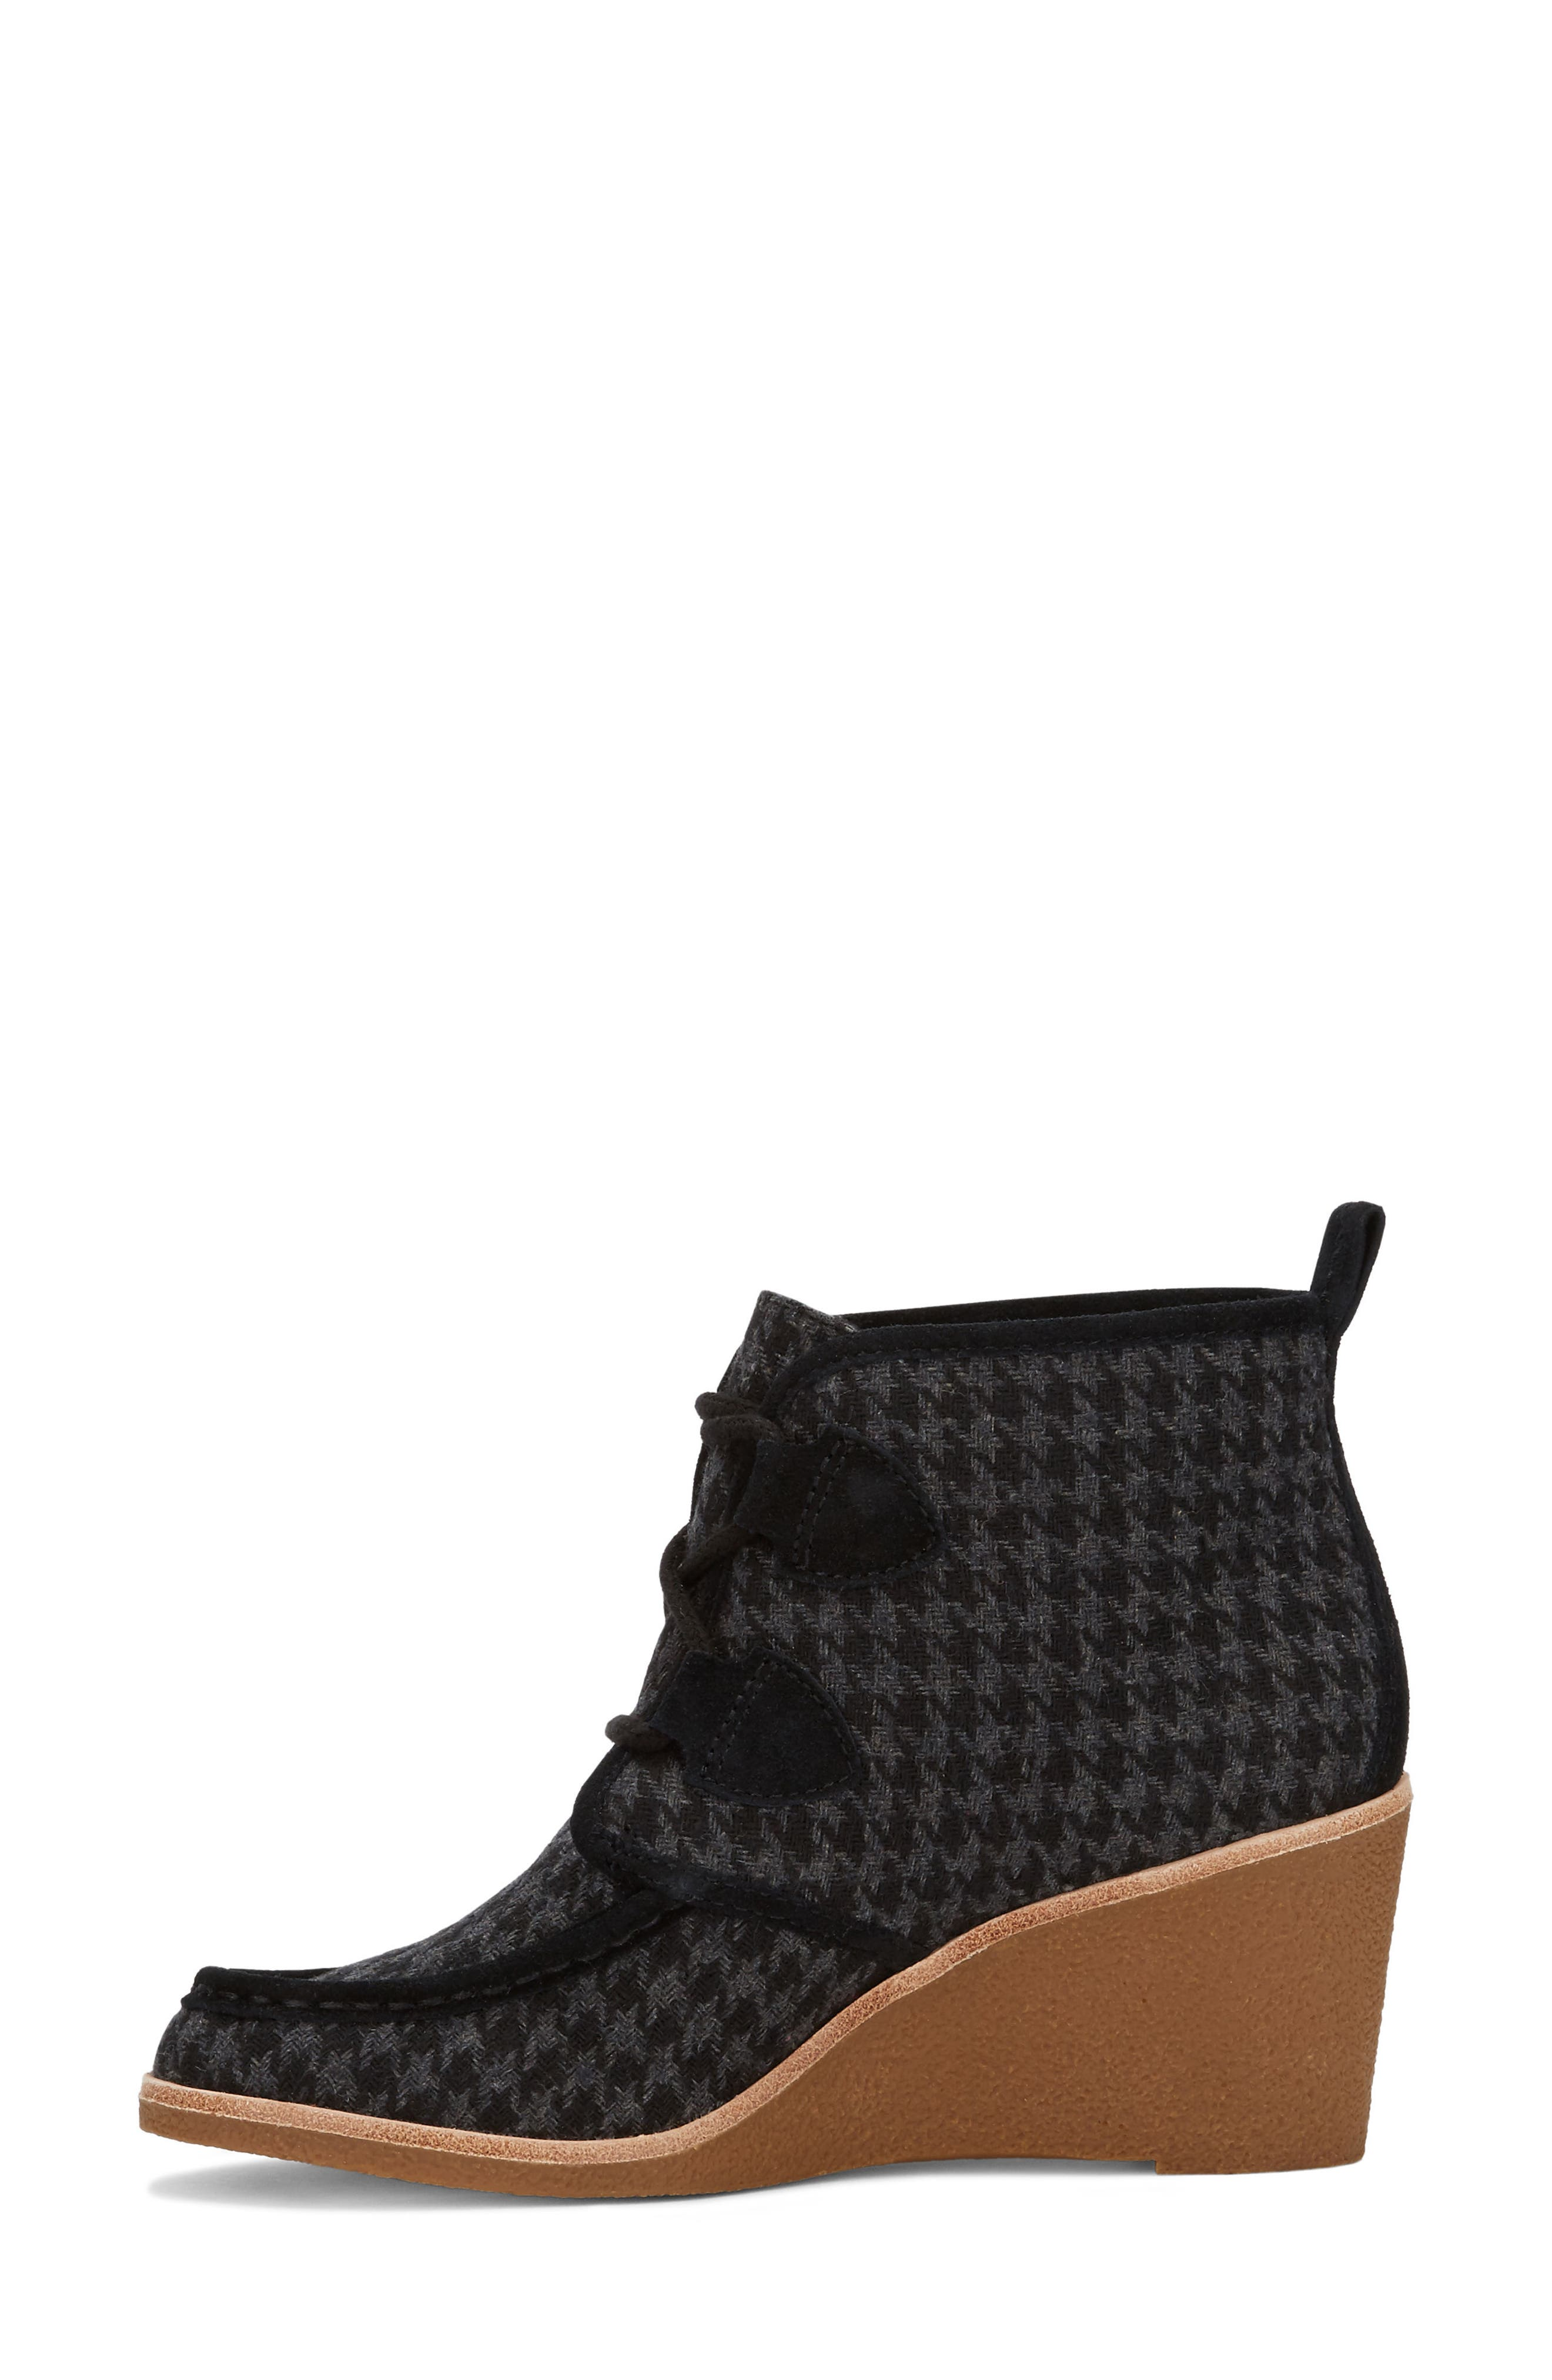 Rosa Wedge Bootie,                             Alternate thumbnail 2, color,                             Black Houndstooth Fabric